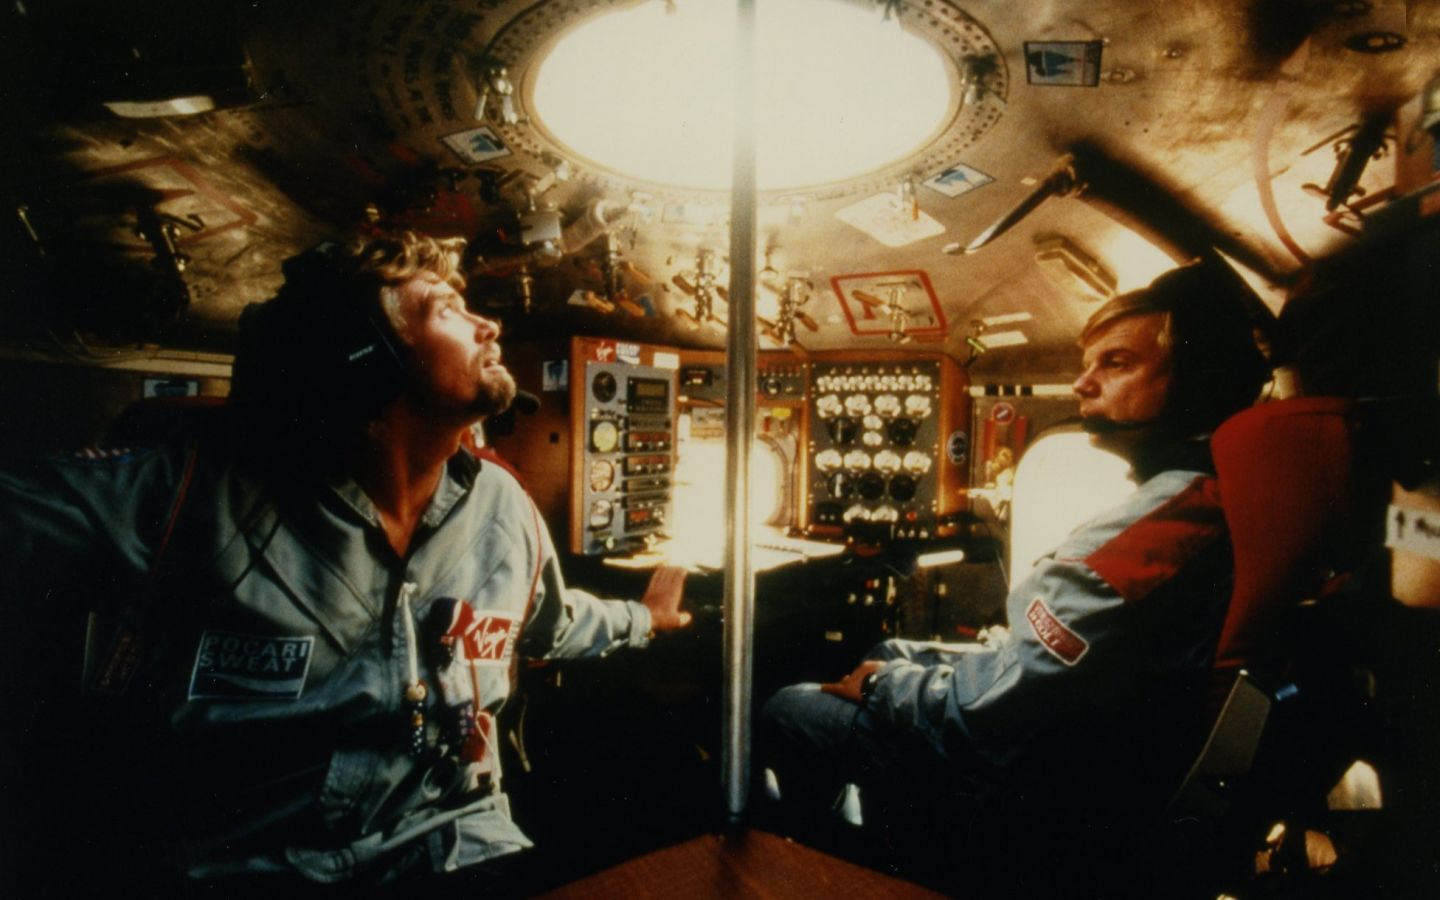 Richard Branson inside a hot-air balloon in 1991